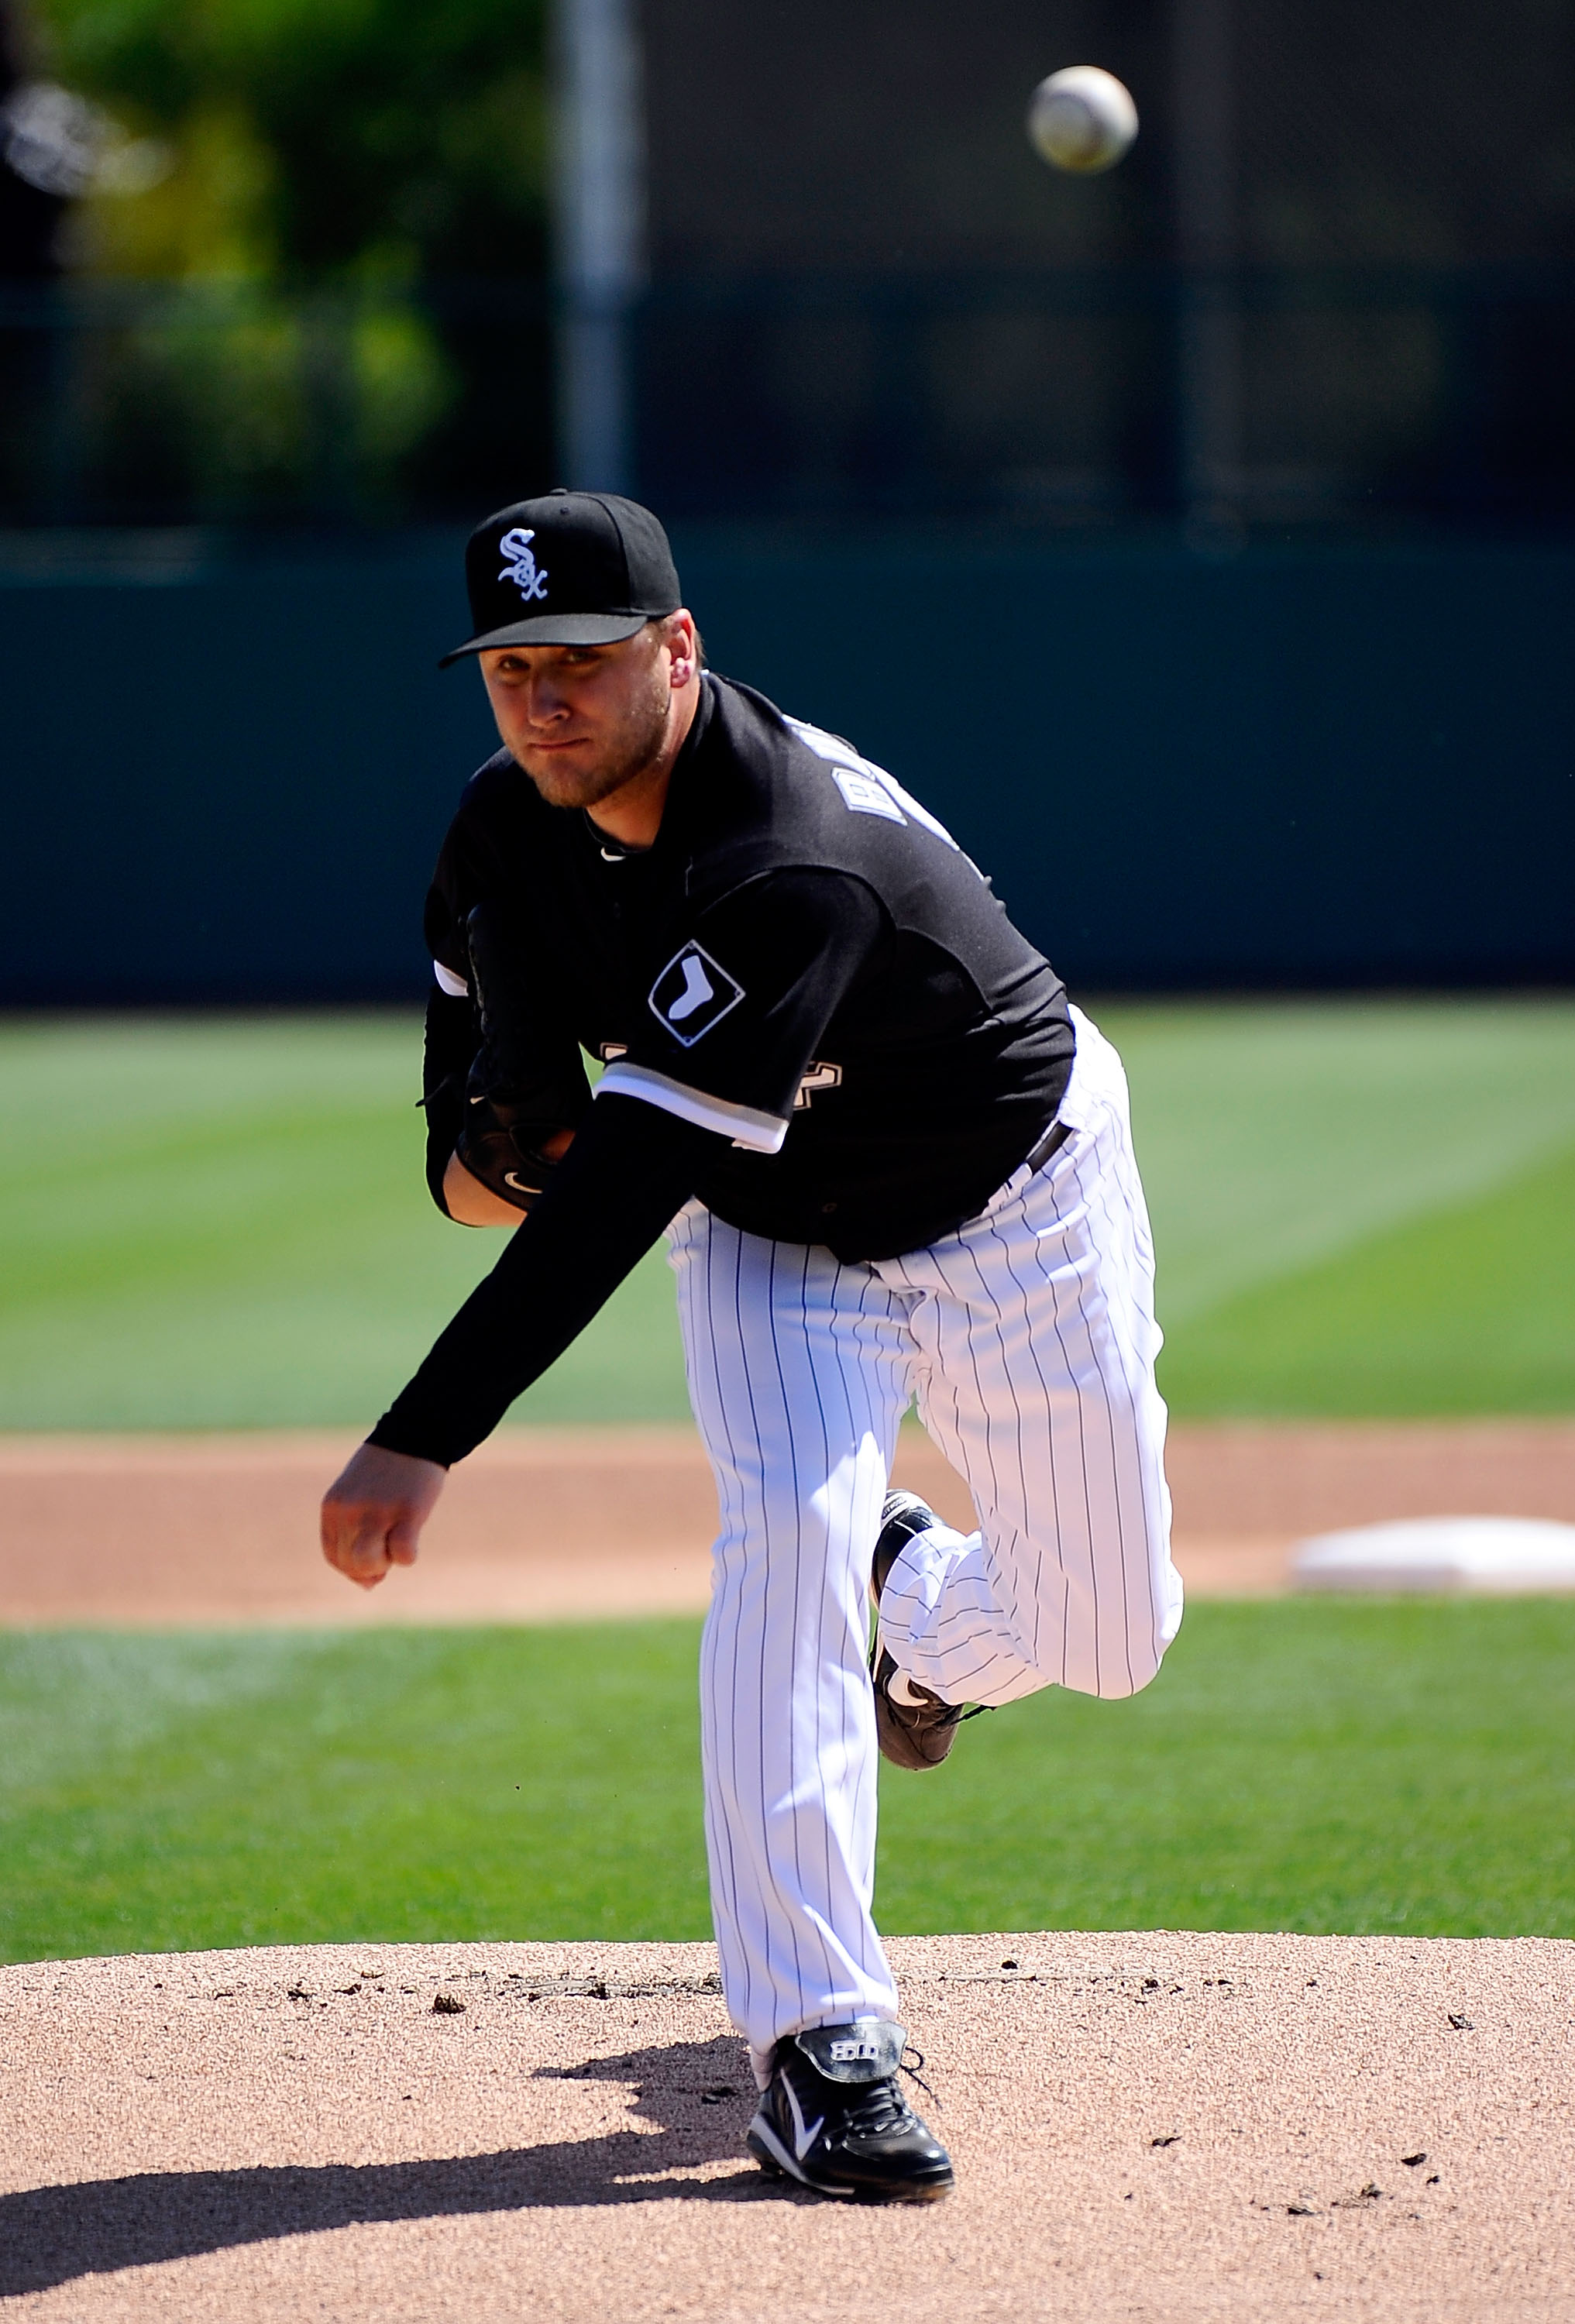 GLENDALE, AZ - MARCH 11:  Mark Buehrle #56 of the Chicago White Sox pitches during the spring training baseball game against Chicago Cubs at Camelback Ranch on March 11, 2011 in Glendale, Arizona.  (Photo by Kevork Djansezian/Getty Images)